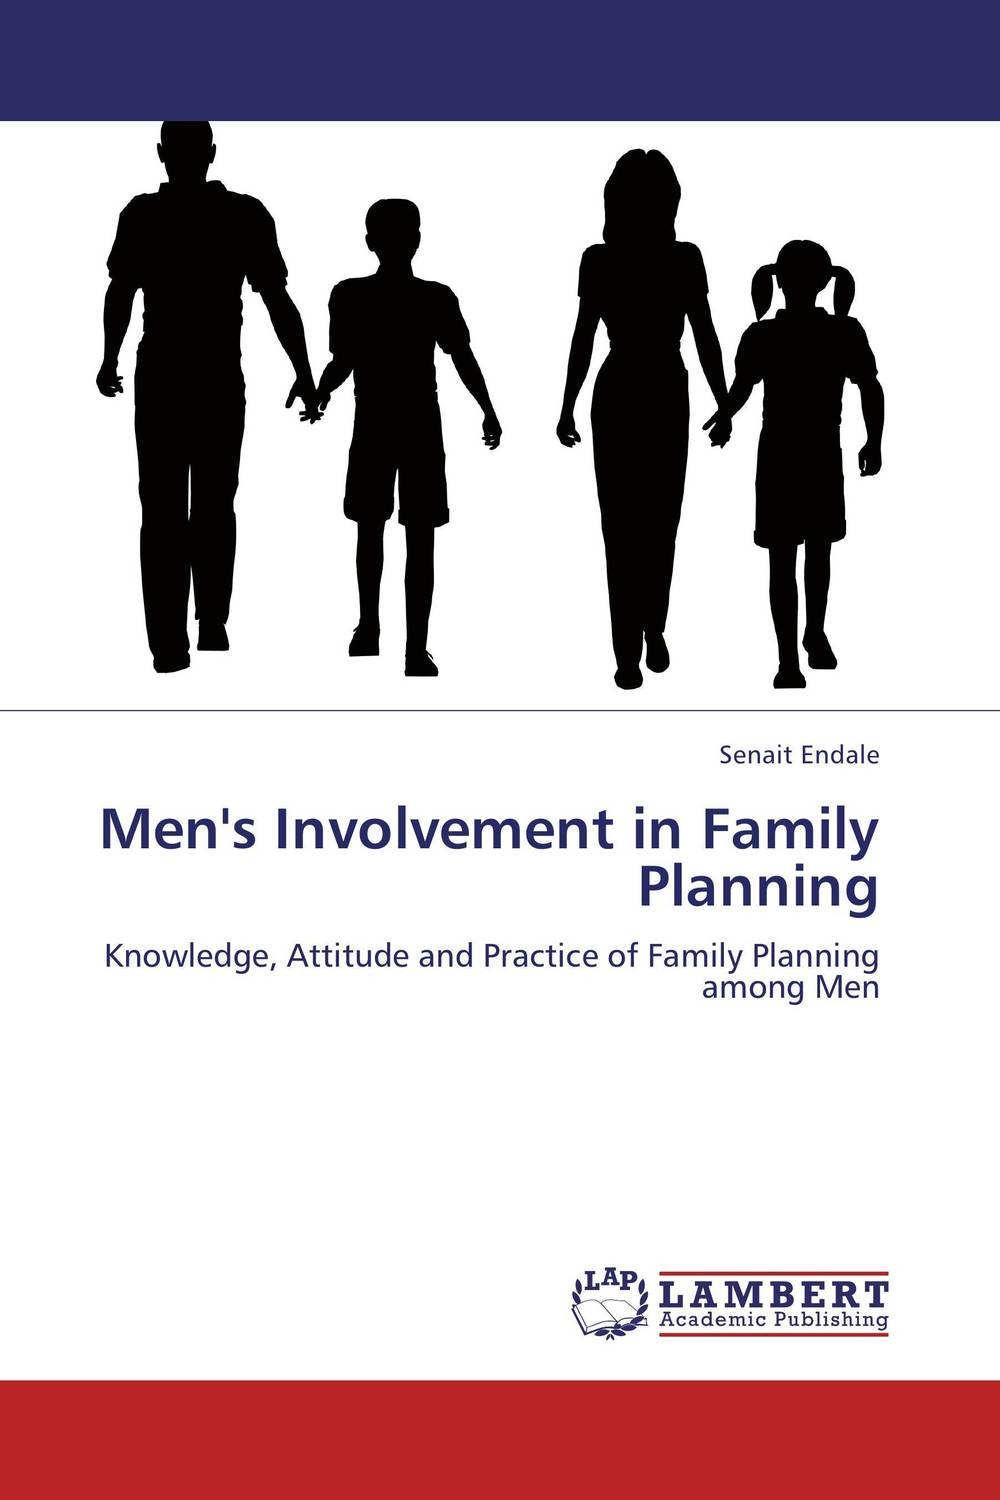 Men's Involvement in Family Planning assessing family planning decision